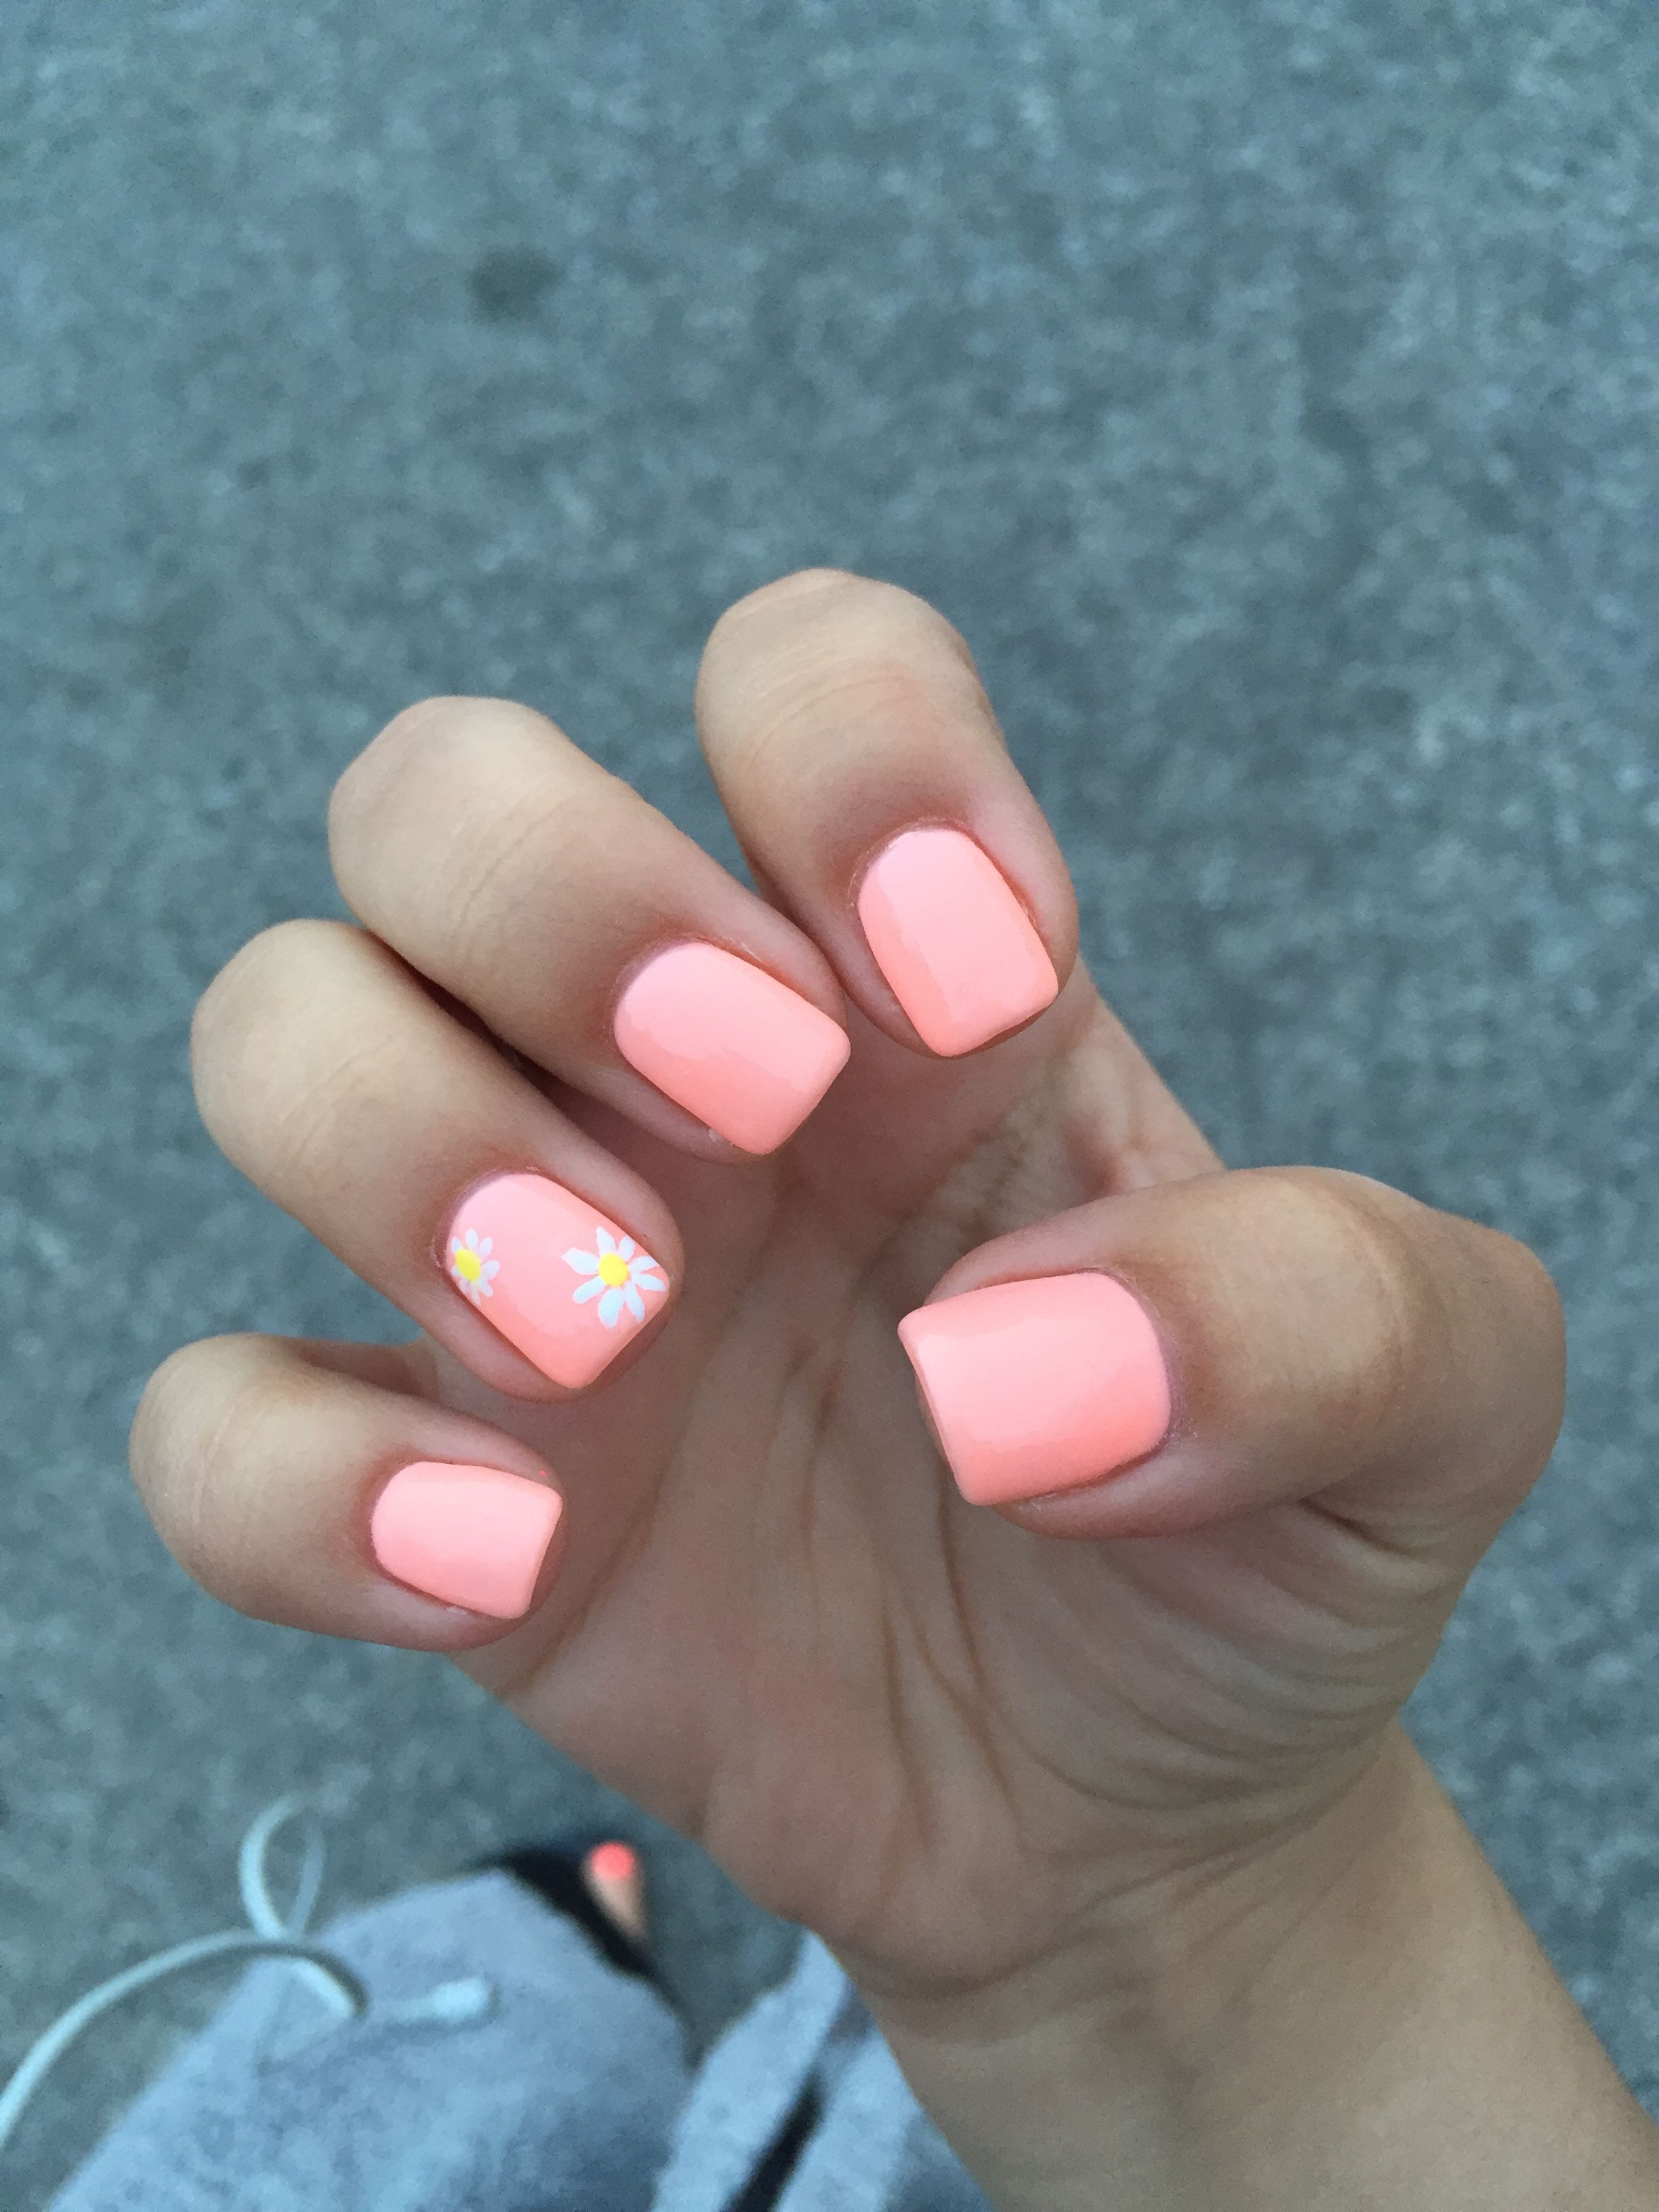 Coral Gel Nails With Daisy Design Coral Gel Nails Opi Gel Nails